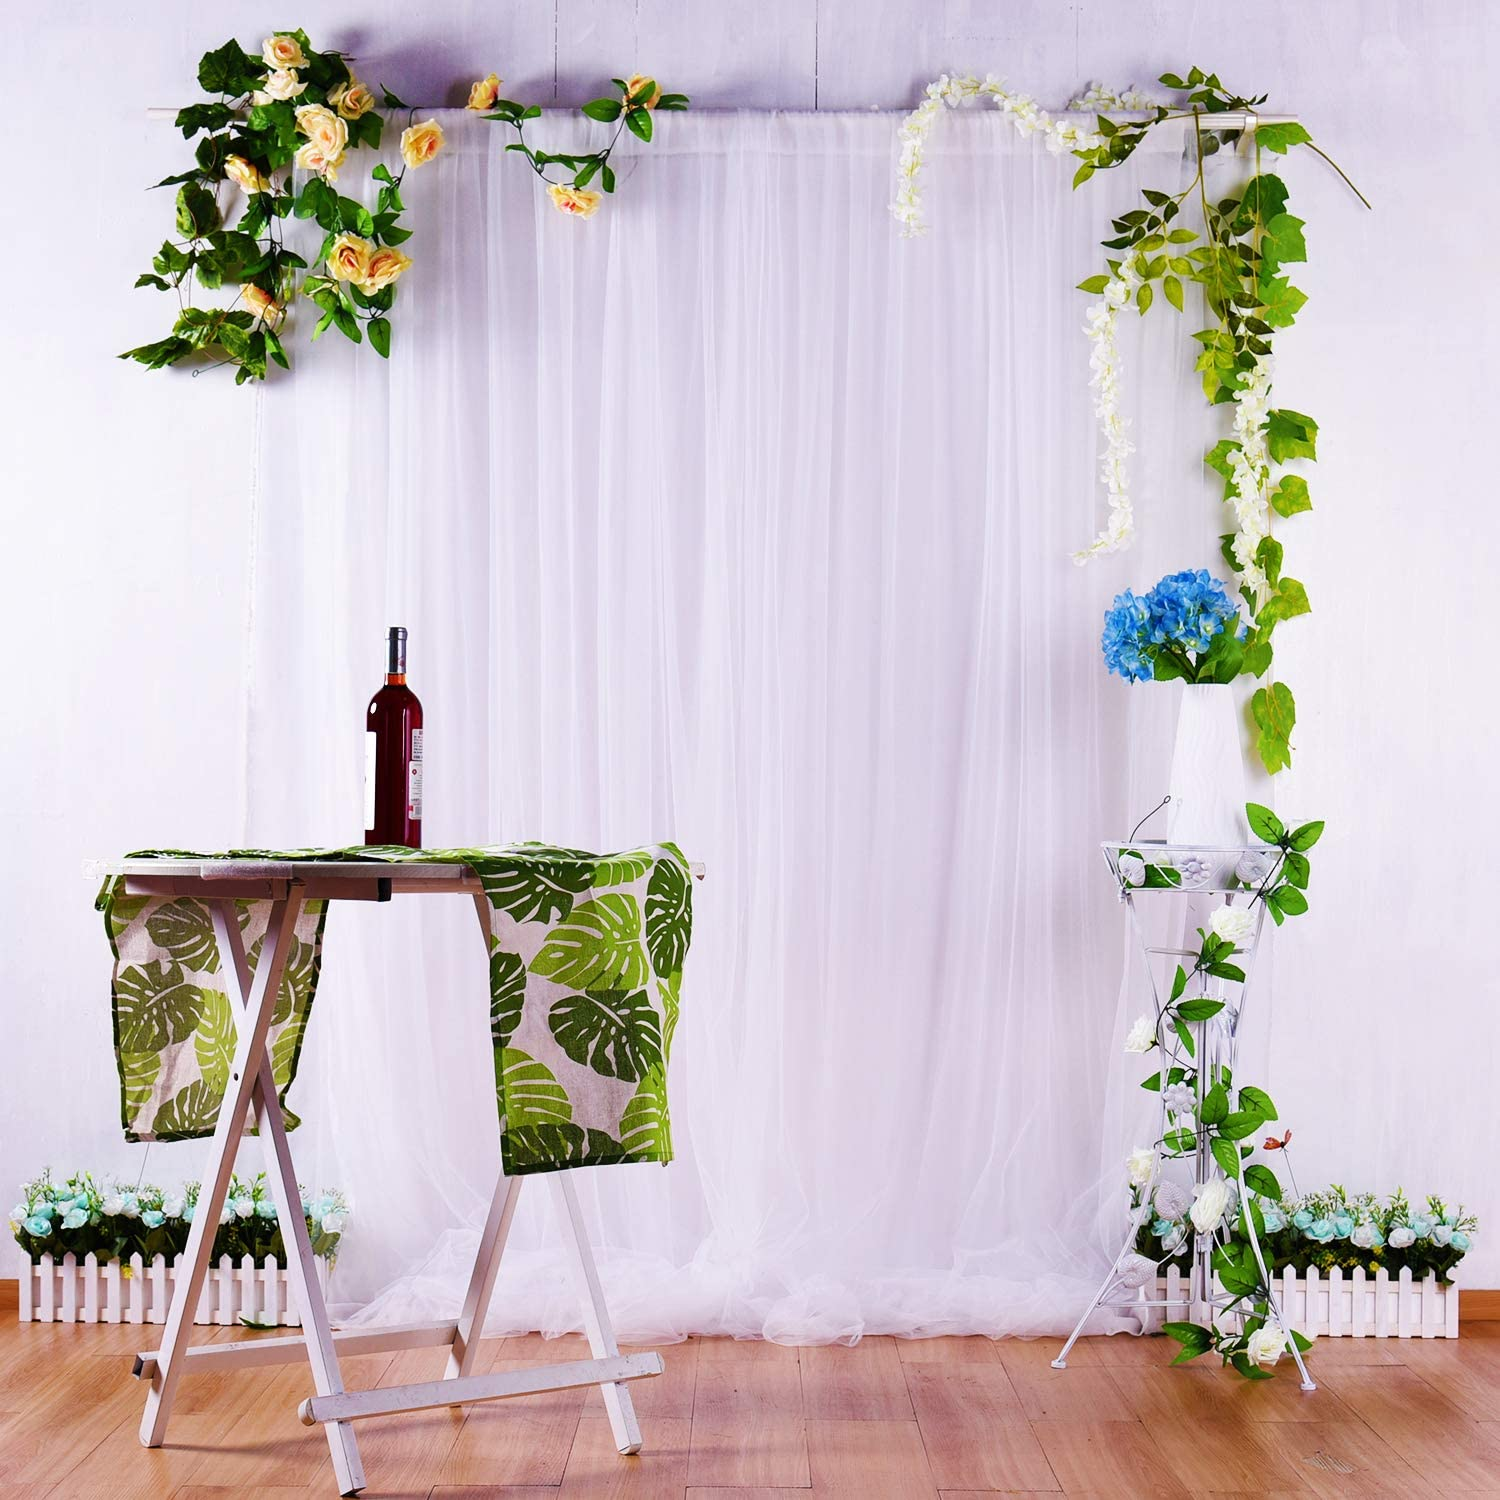 White Tulle Backdrop Curtain for Parties Weddings Baby Shower Birthday Bridal Shower Photography 5ft x 7ft Drape Backdrop